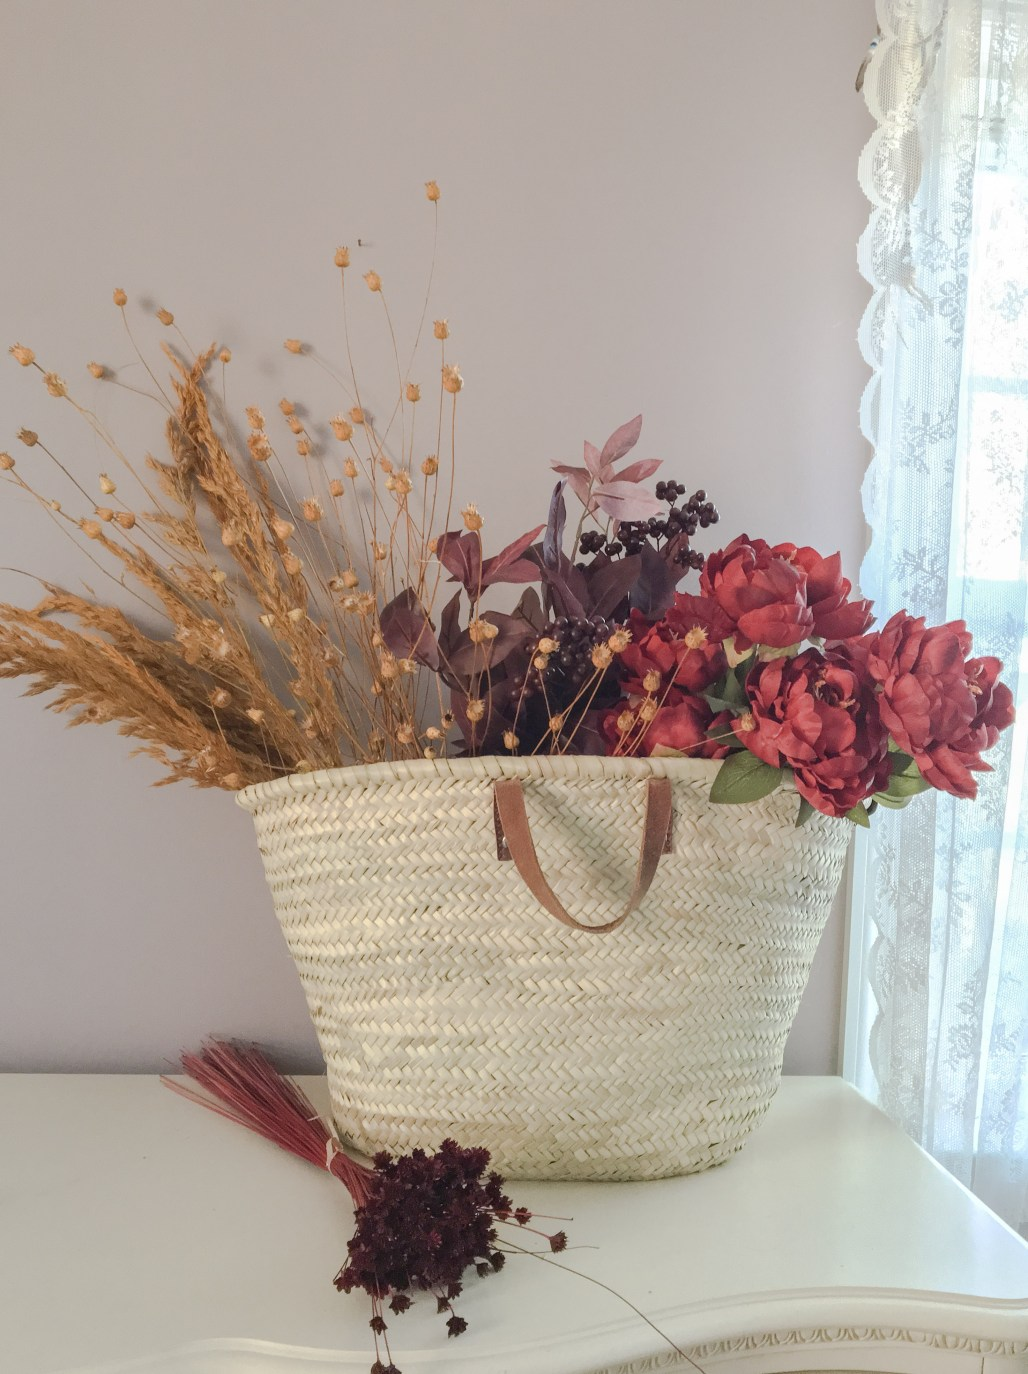 Autumn Decor Inspiration :: Baskets + Richly Hued Blooms || Dreamery Events